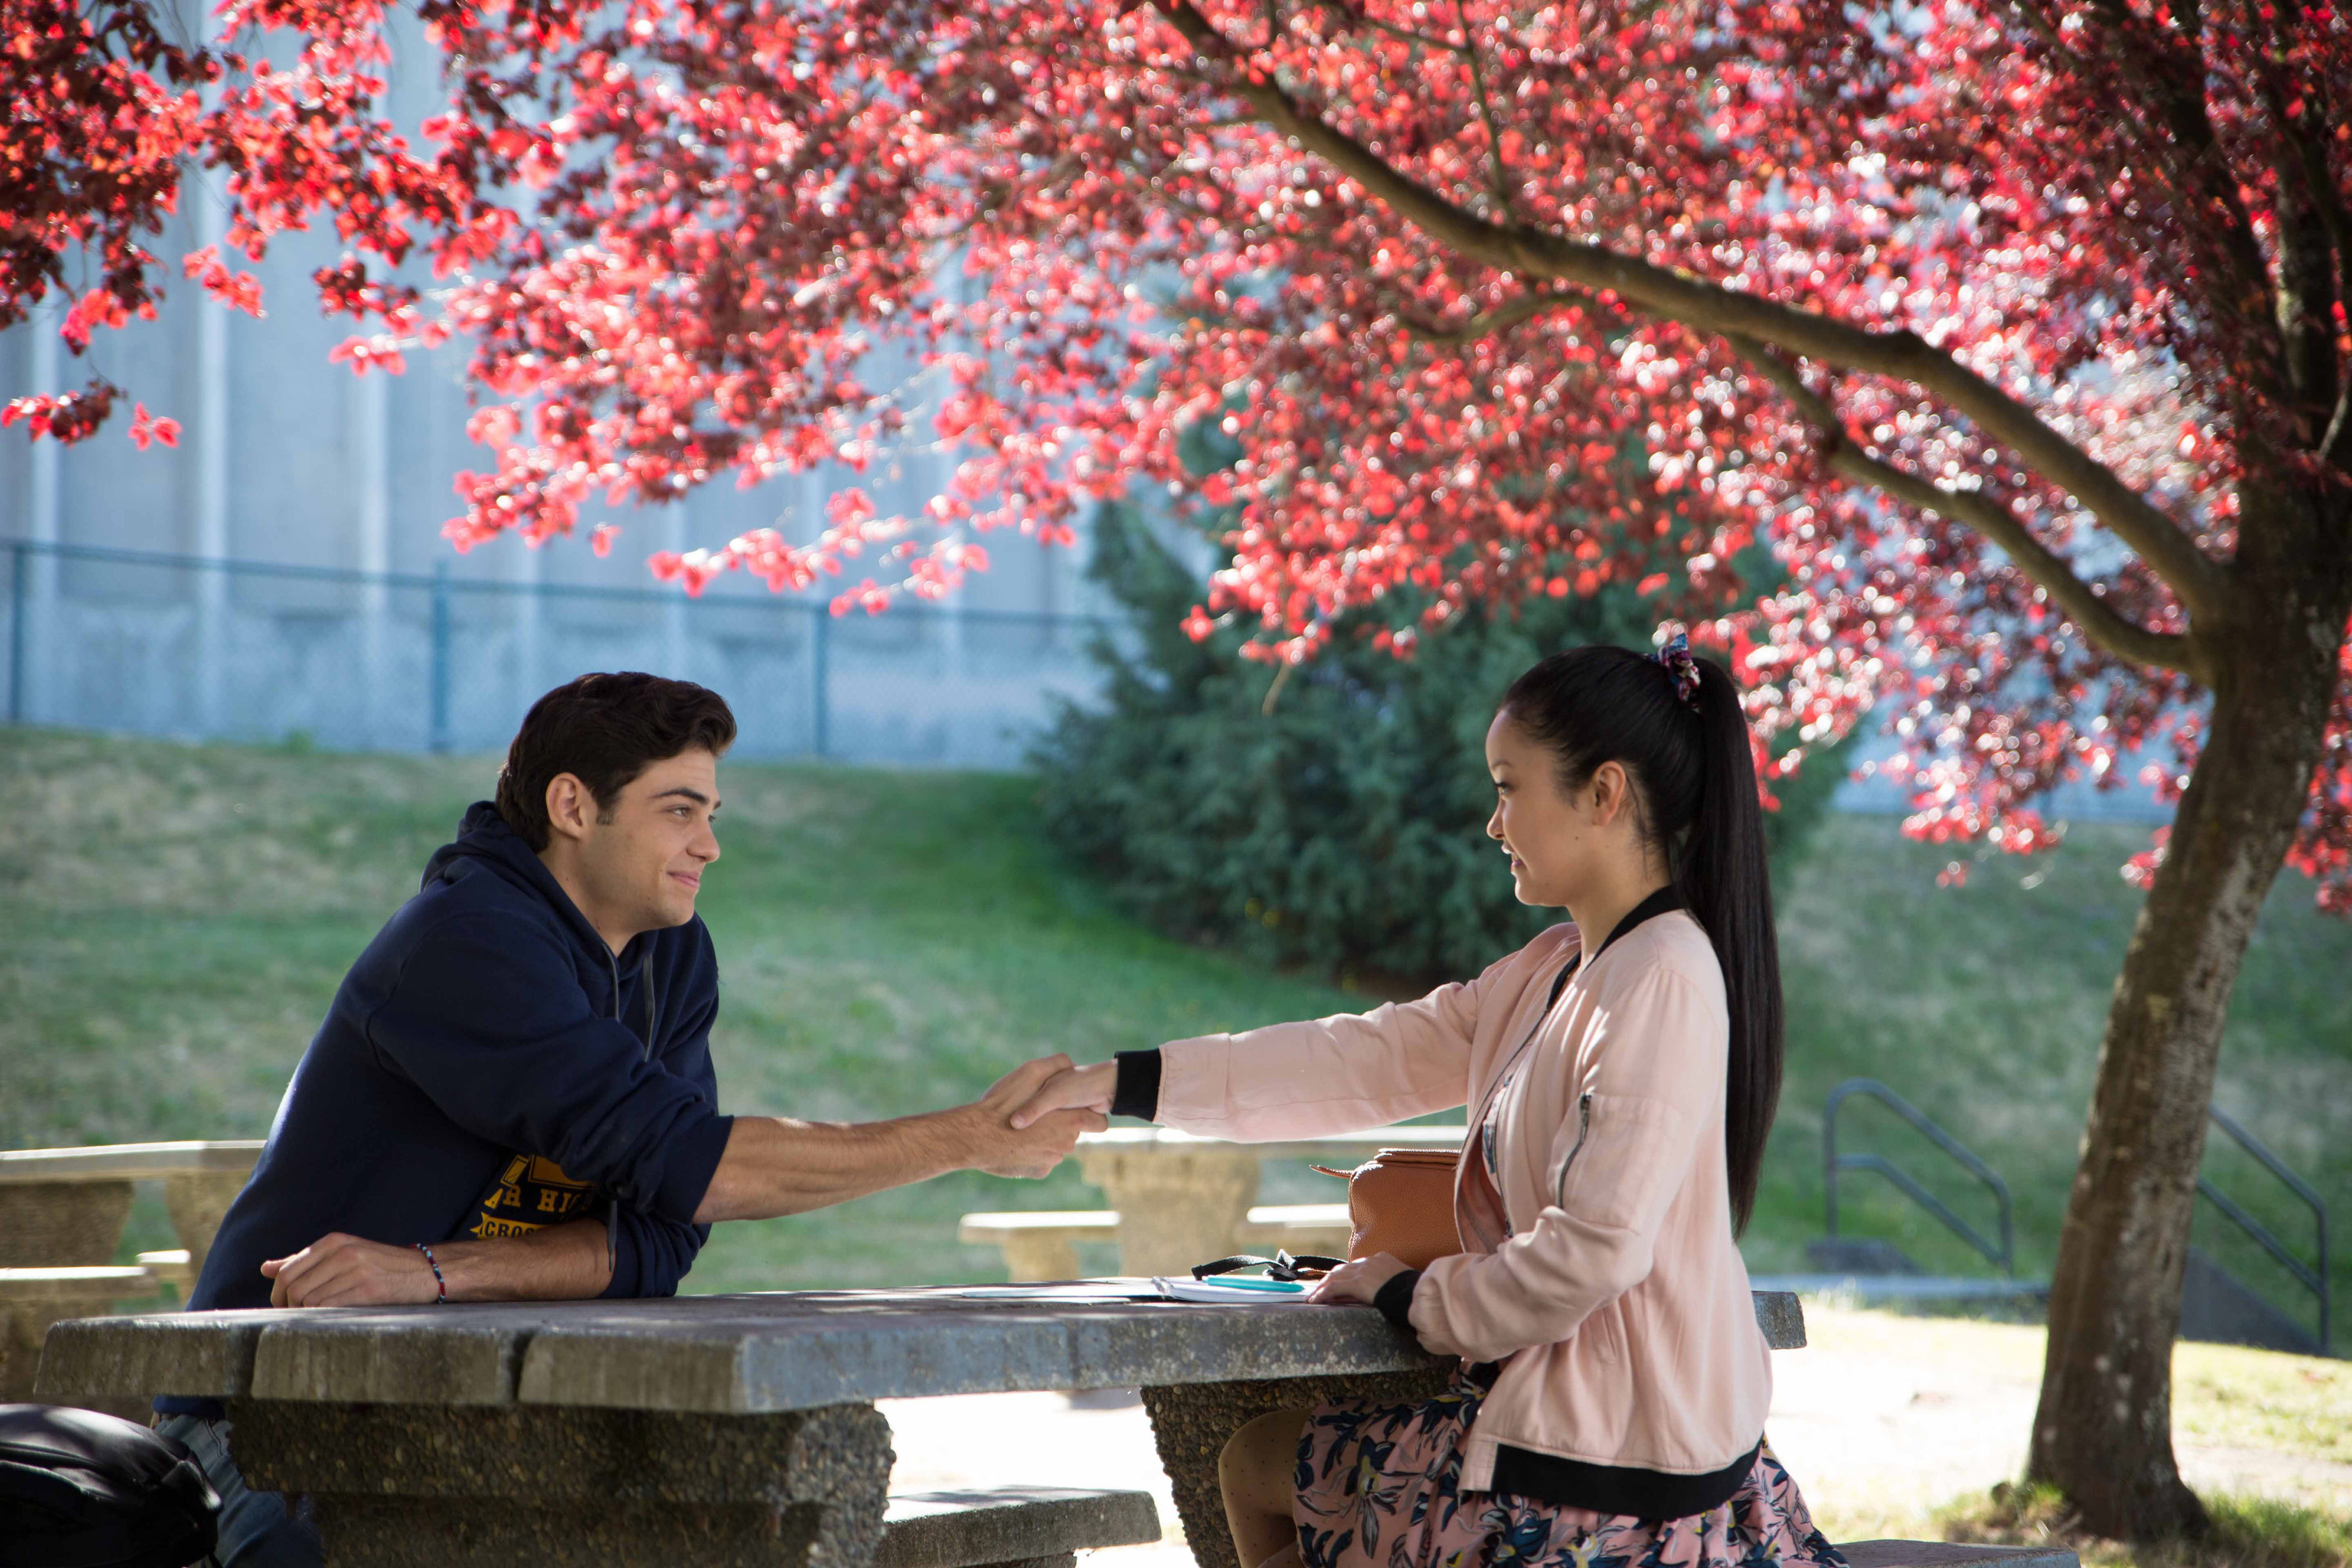 Noah Centineo and Lana Condor sit at a picnic table in To All the Boys I've Loved Before